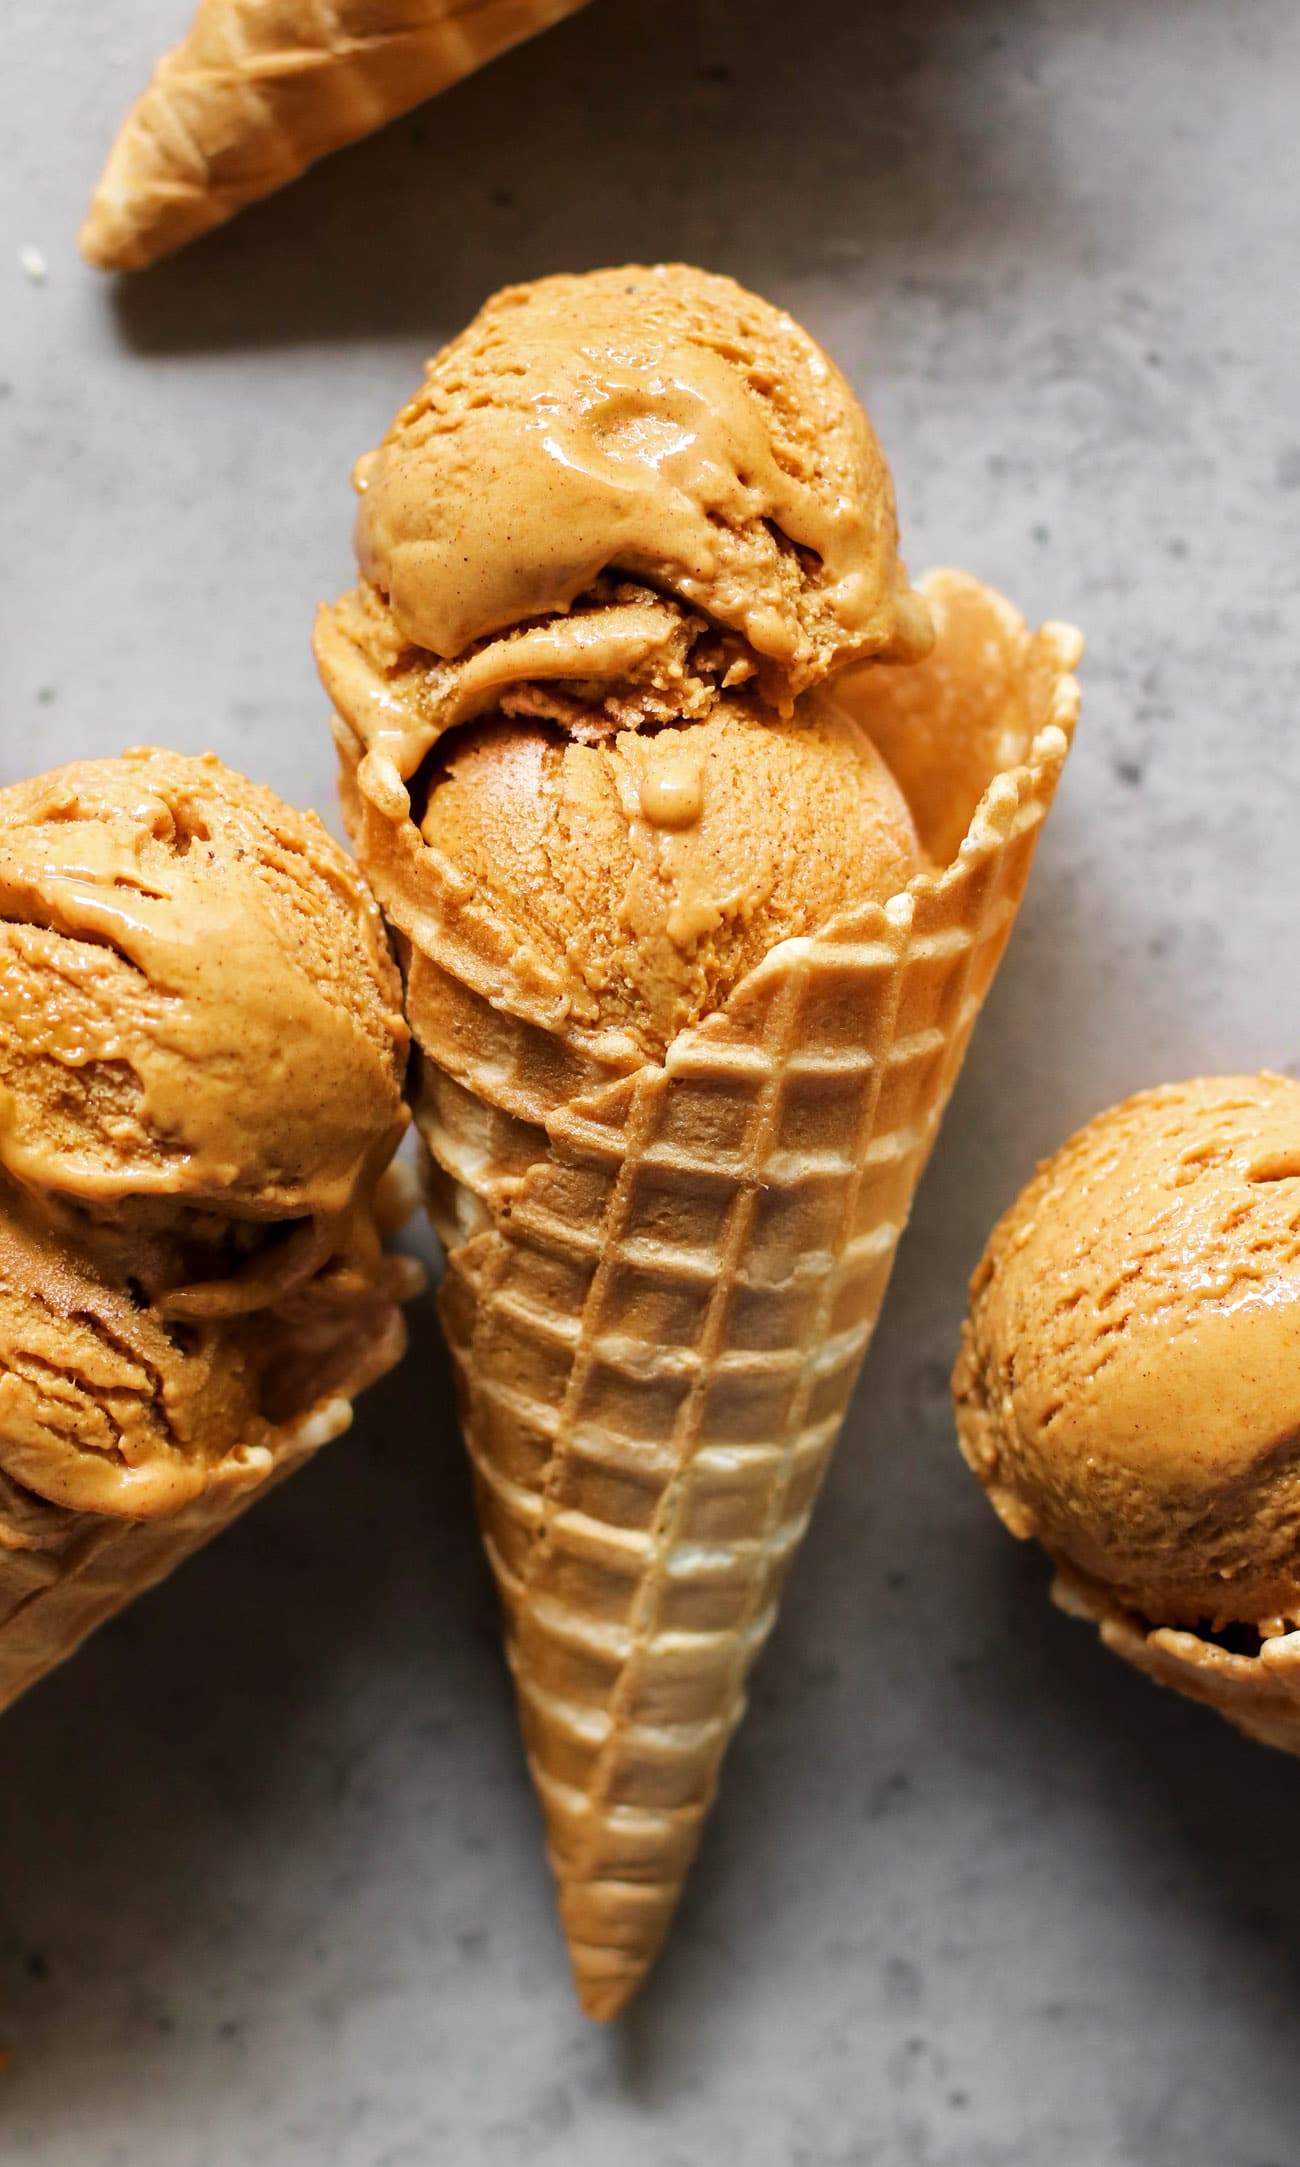 This Healthy Pumpkin Ice Cream is ULTRA creamy, perfectly spiced, and sweet enough to satisfy your sweet tooth. Best of all, it's made with 100% good-for-you ingredients! No heavy cream, no eggs, and no refined sugar! Instead, this version is low fat, refined sugar free, high protein, and gluten free too! #pumpkin #pumpkinpiespice #allnatural #refinedsugarfree #healthyicecream #highprotein #lowfat #easy #homemadeicecream